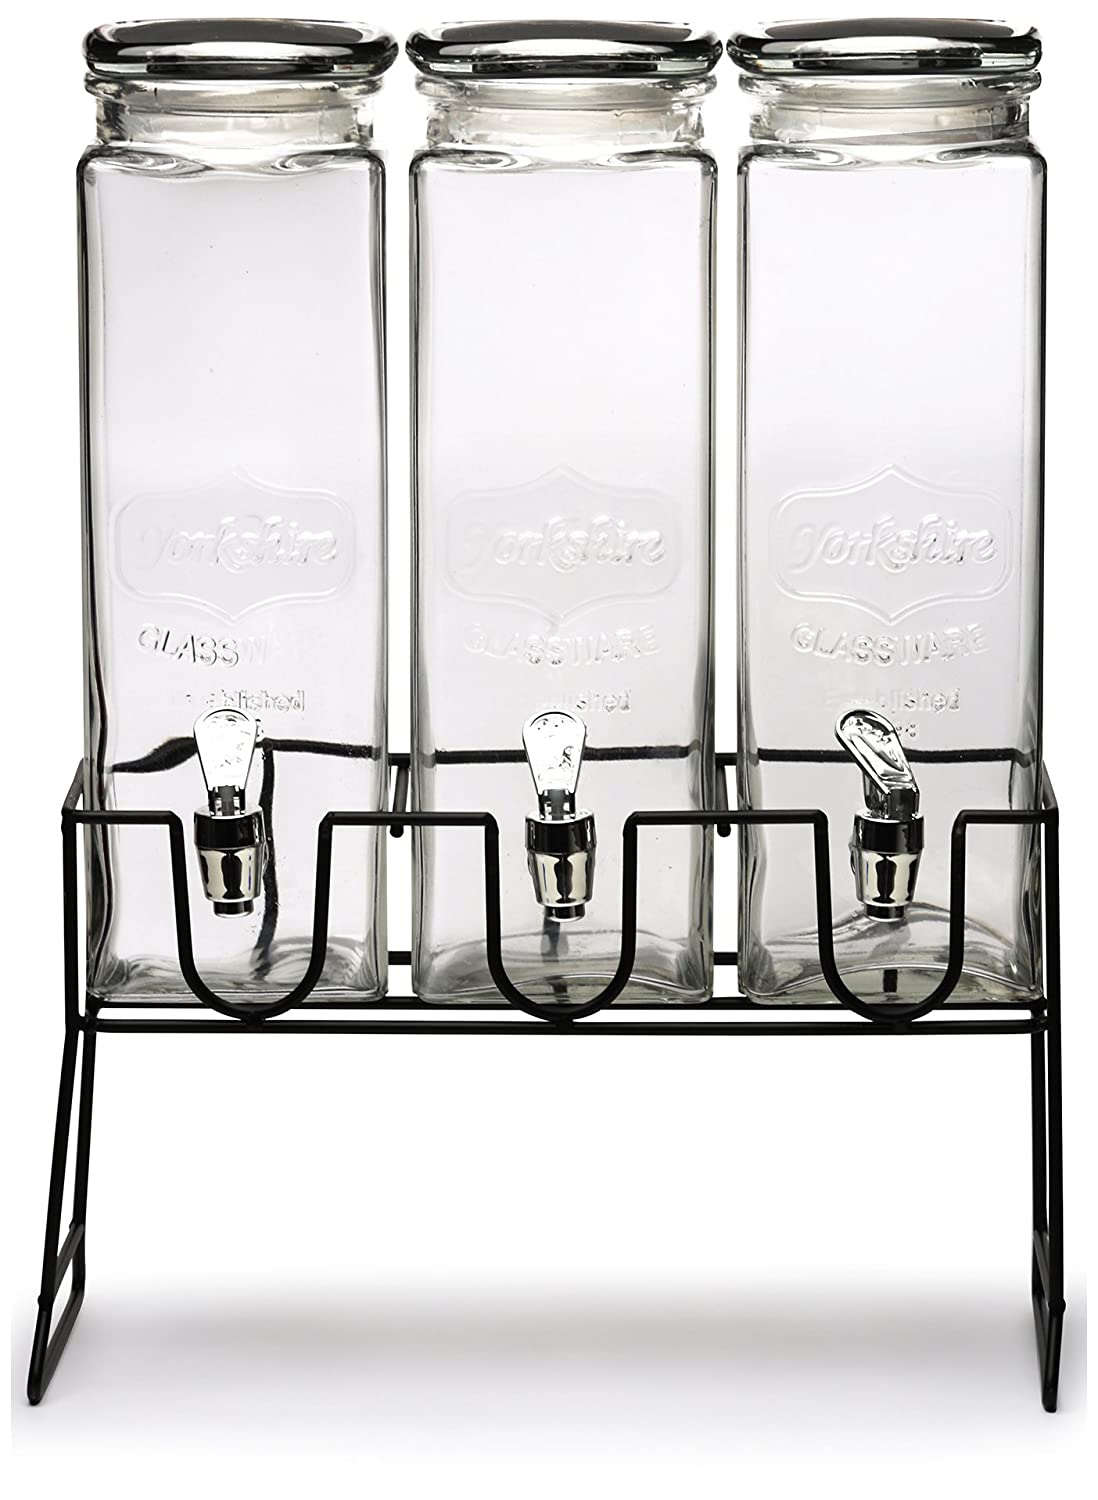 Circleware Triple XL Tall Yorkshire Beverage Drink Dispensers with Black Lids and Black Metal Stand, 2.3 L, Clear